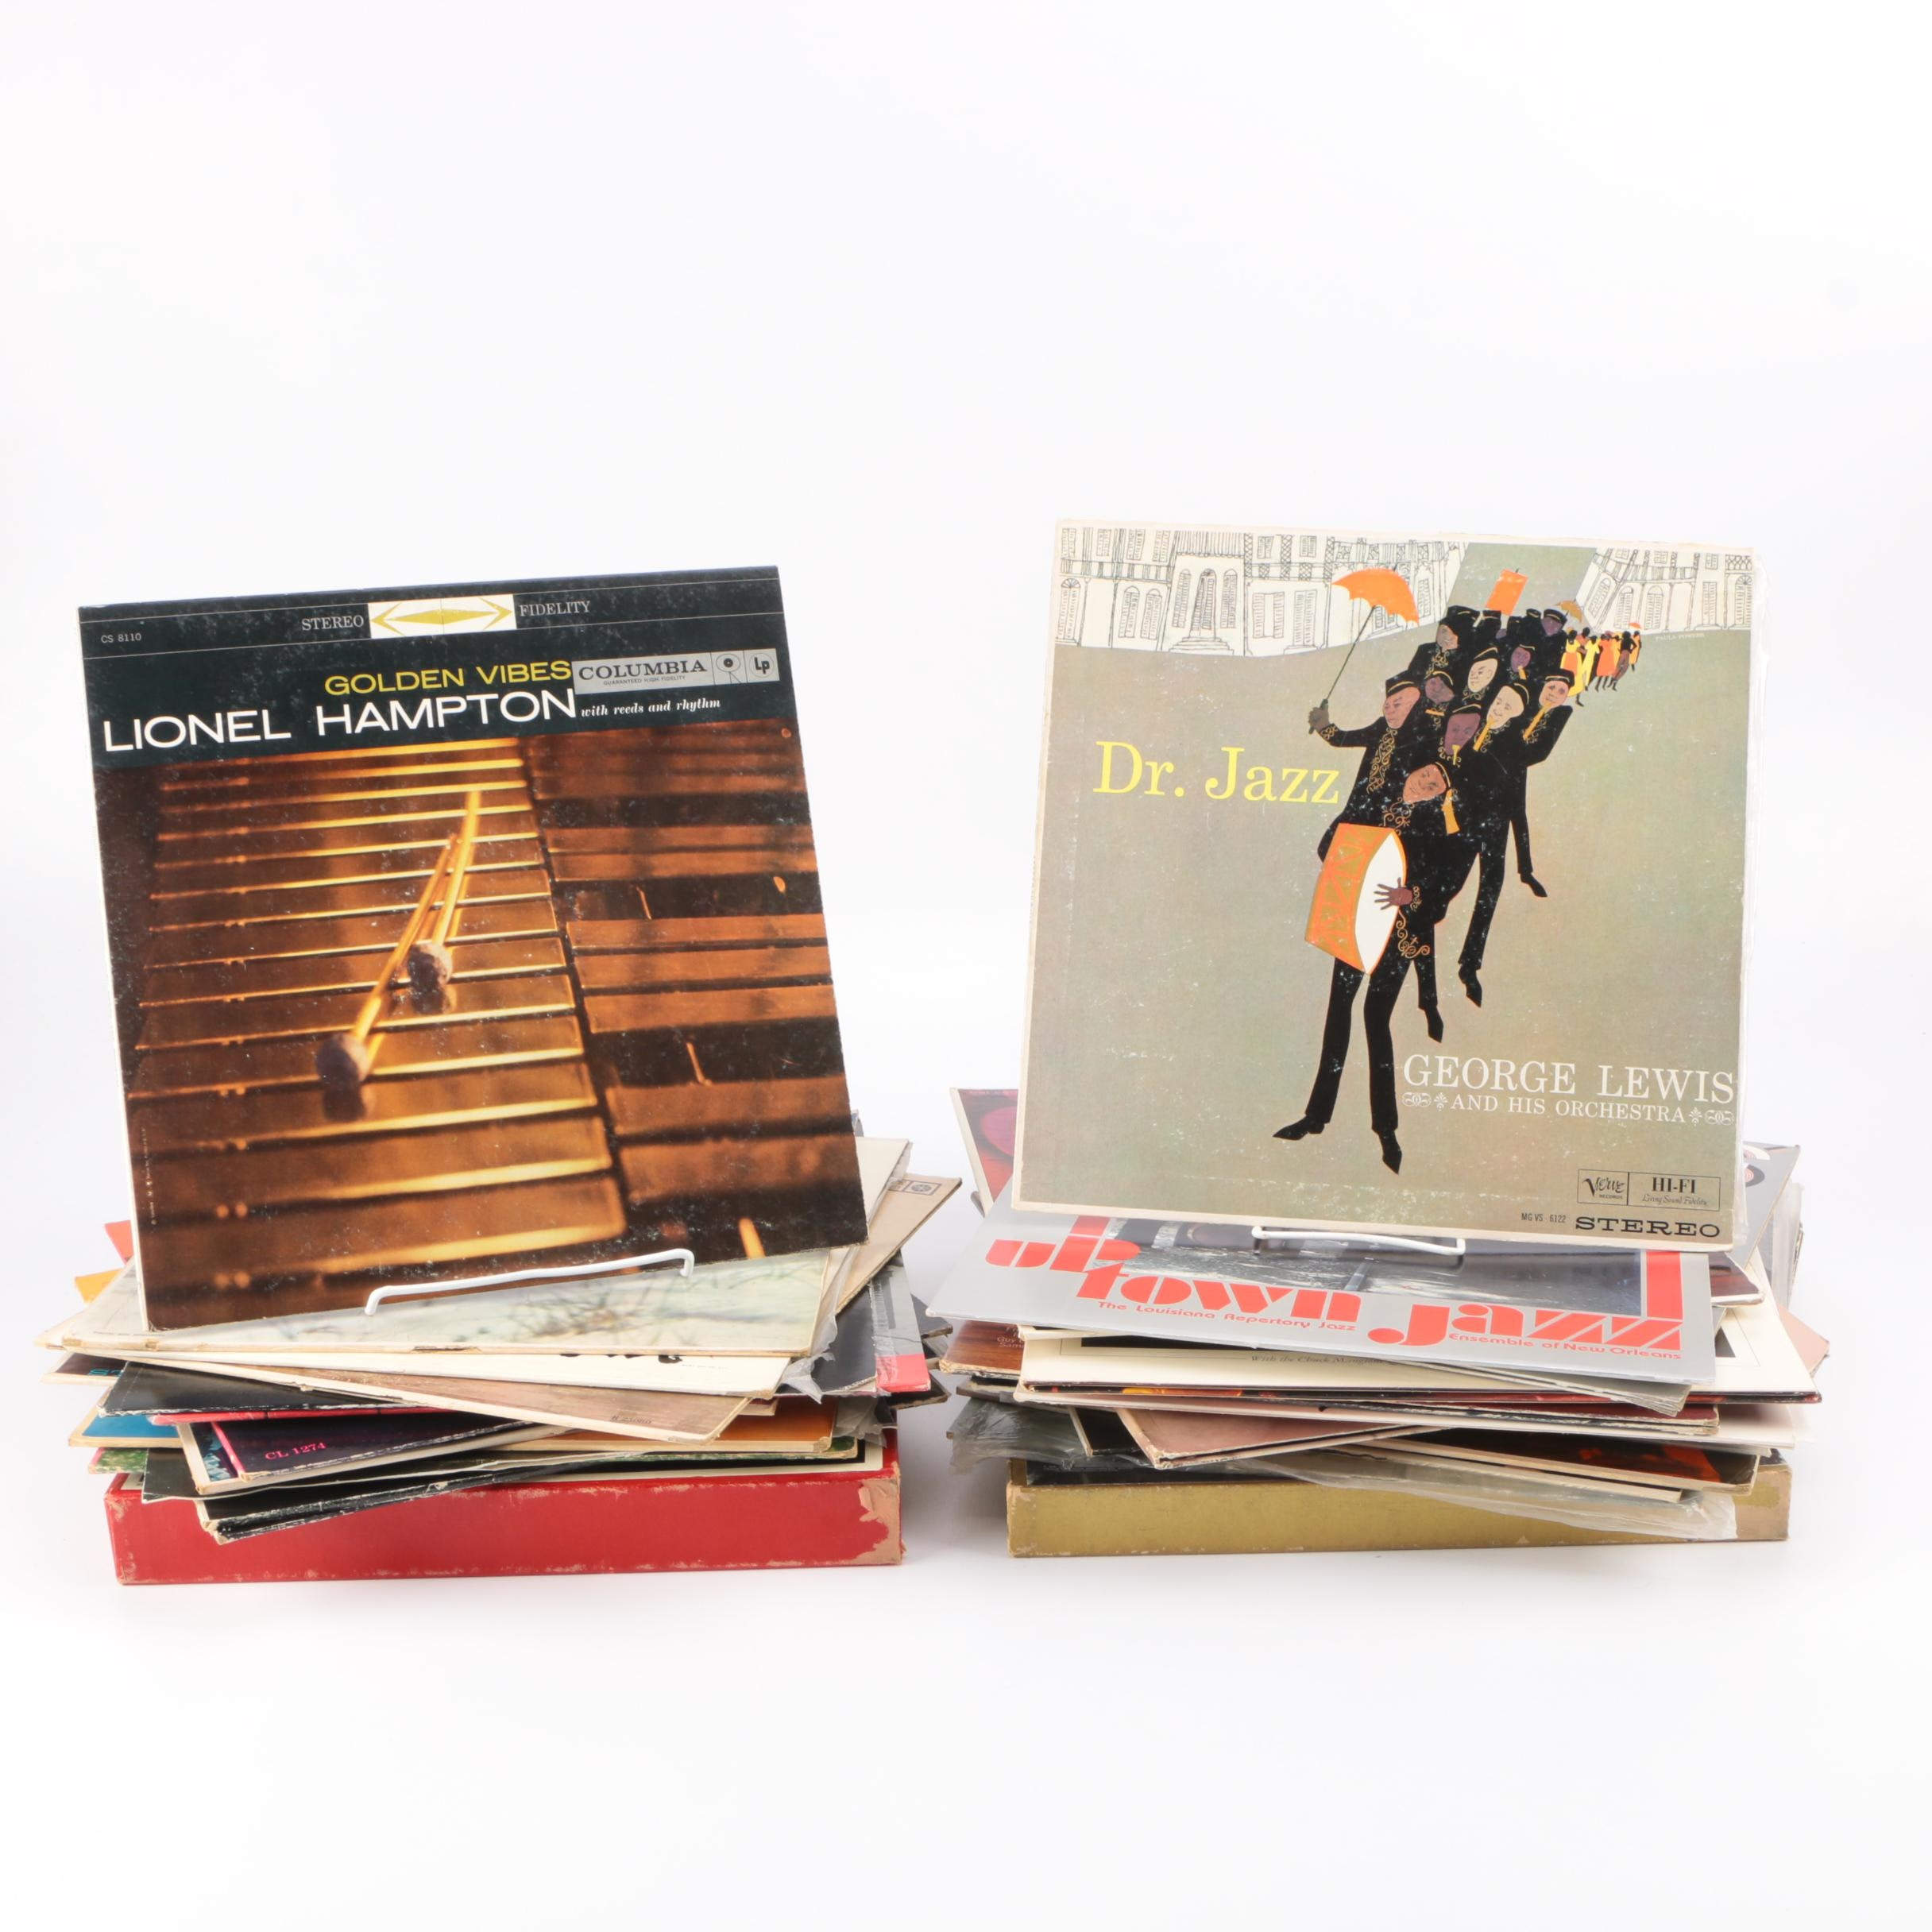 Nat King Cole and Other Vintage Jazz LPs